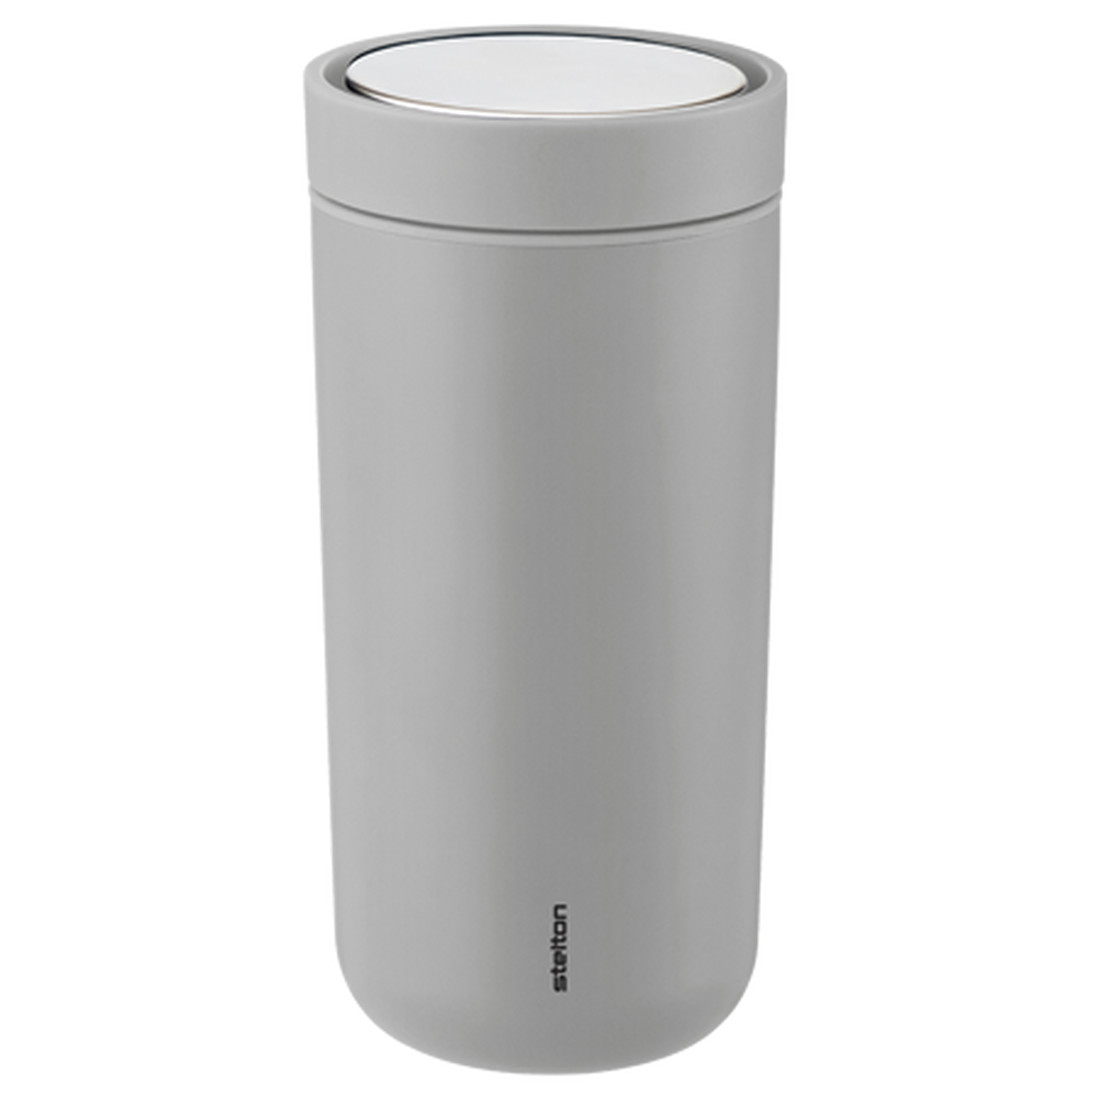 To Go Click Thermobecher Edelstahl 0,4l - light grey by stelton